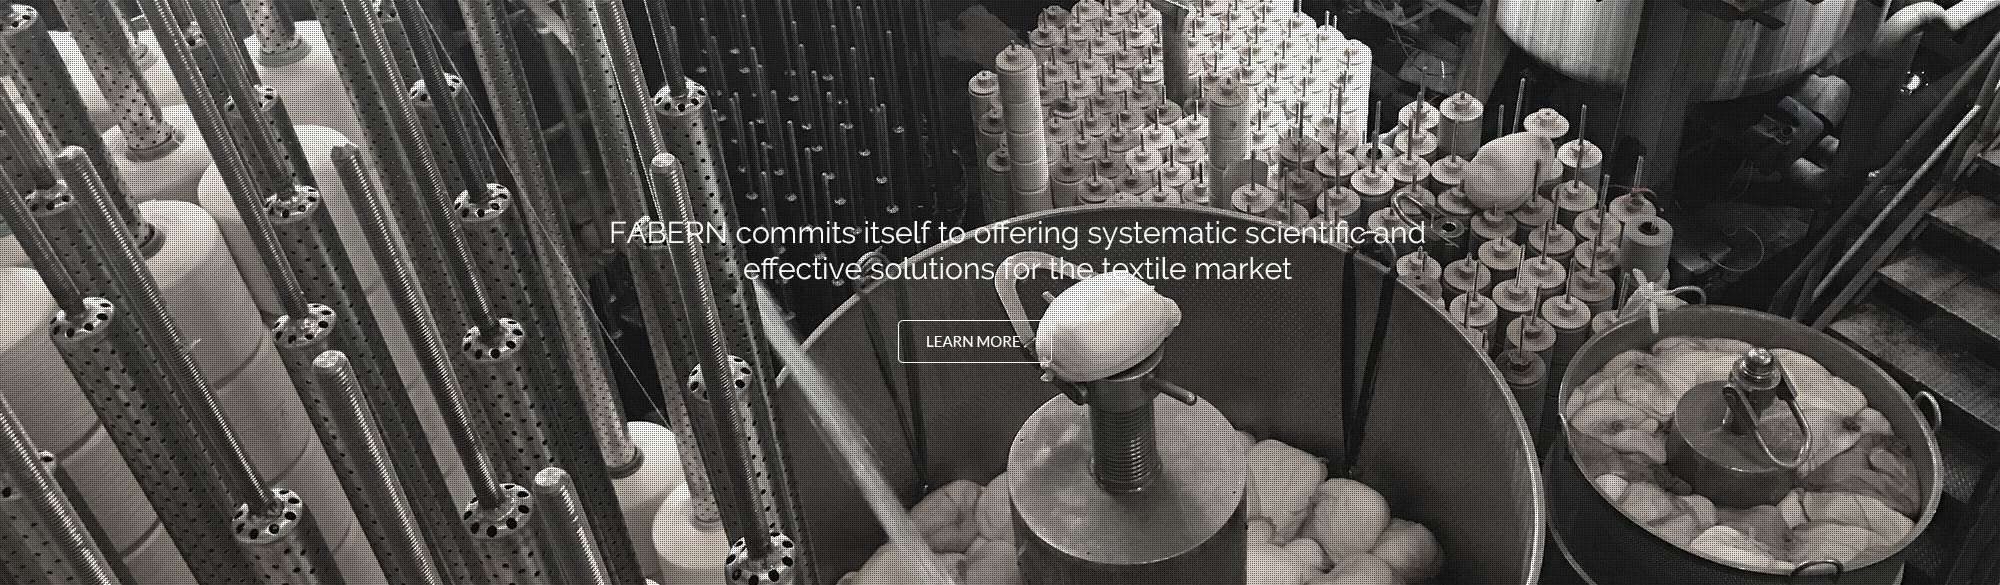 FABERN commits itself to offering systematic scientific and effective solutions for the textile market